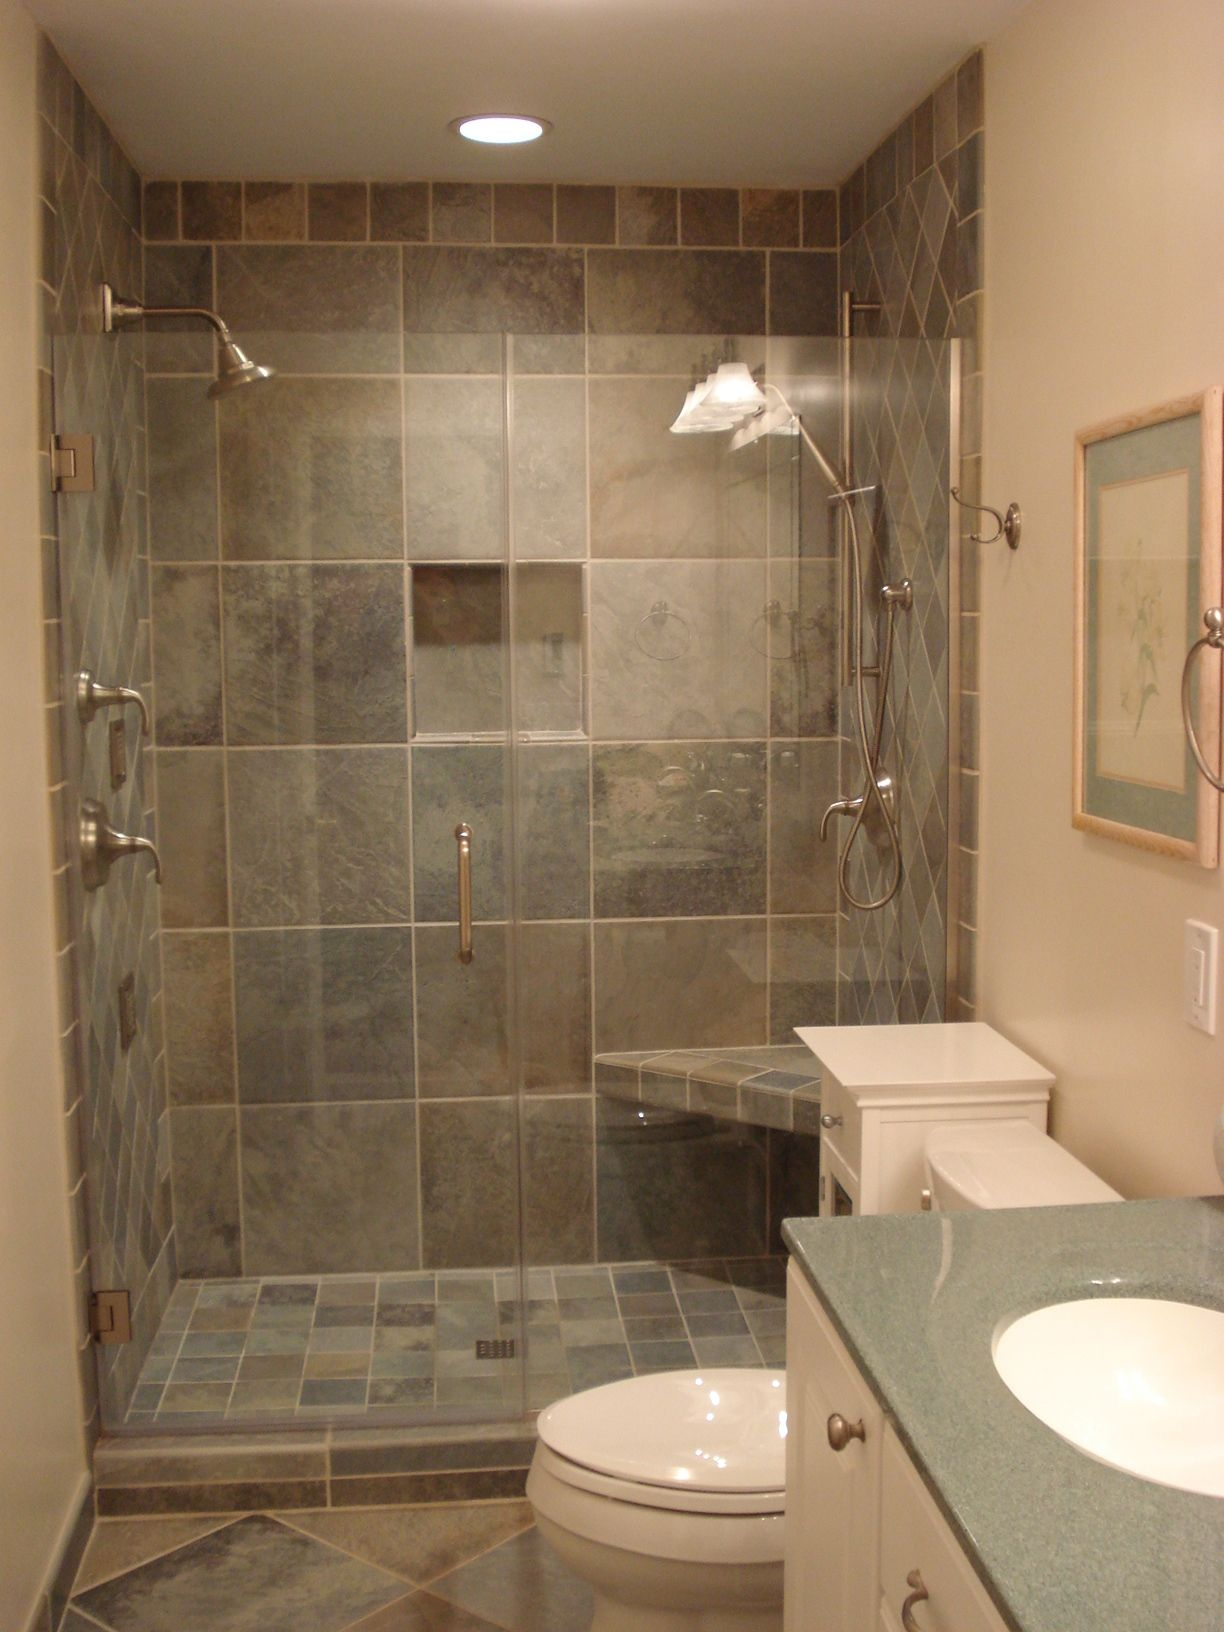 besf of ideas remodel bathroom tub and how to remodel my bathroom sydney bathroom renovations small bathroom remodel on a budget remodel a small bathroom - Bathroom Remodel Design Ideas